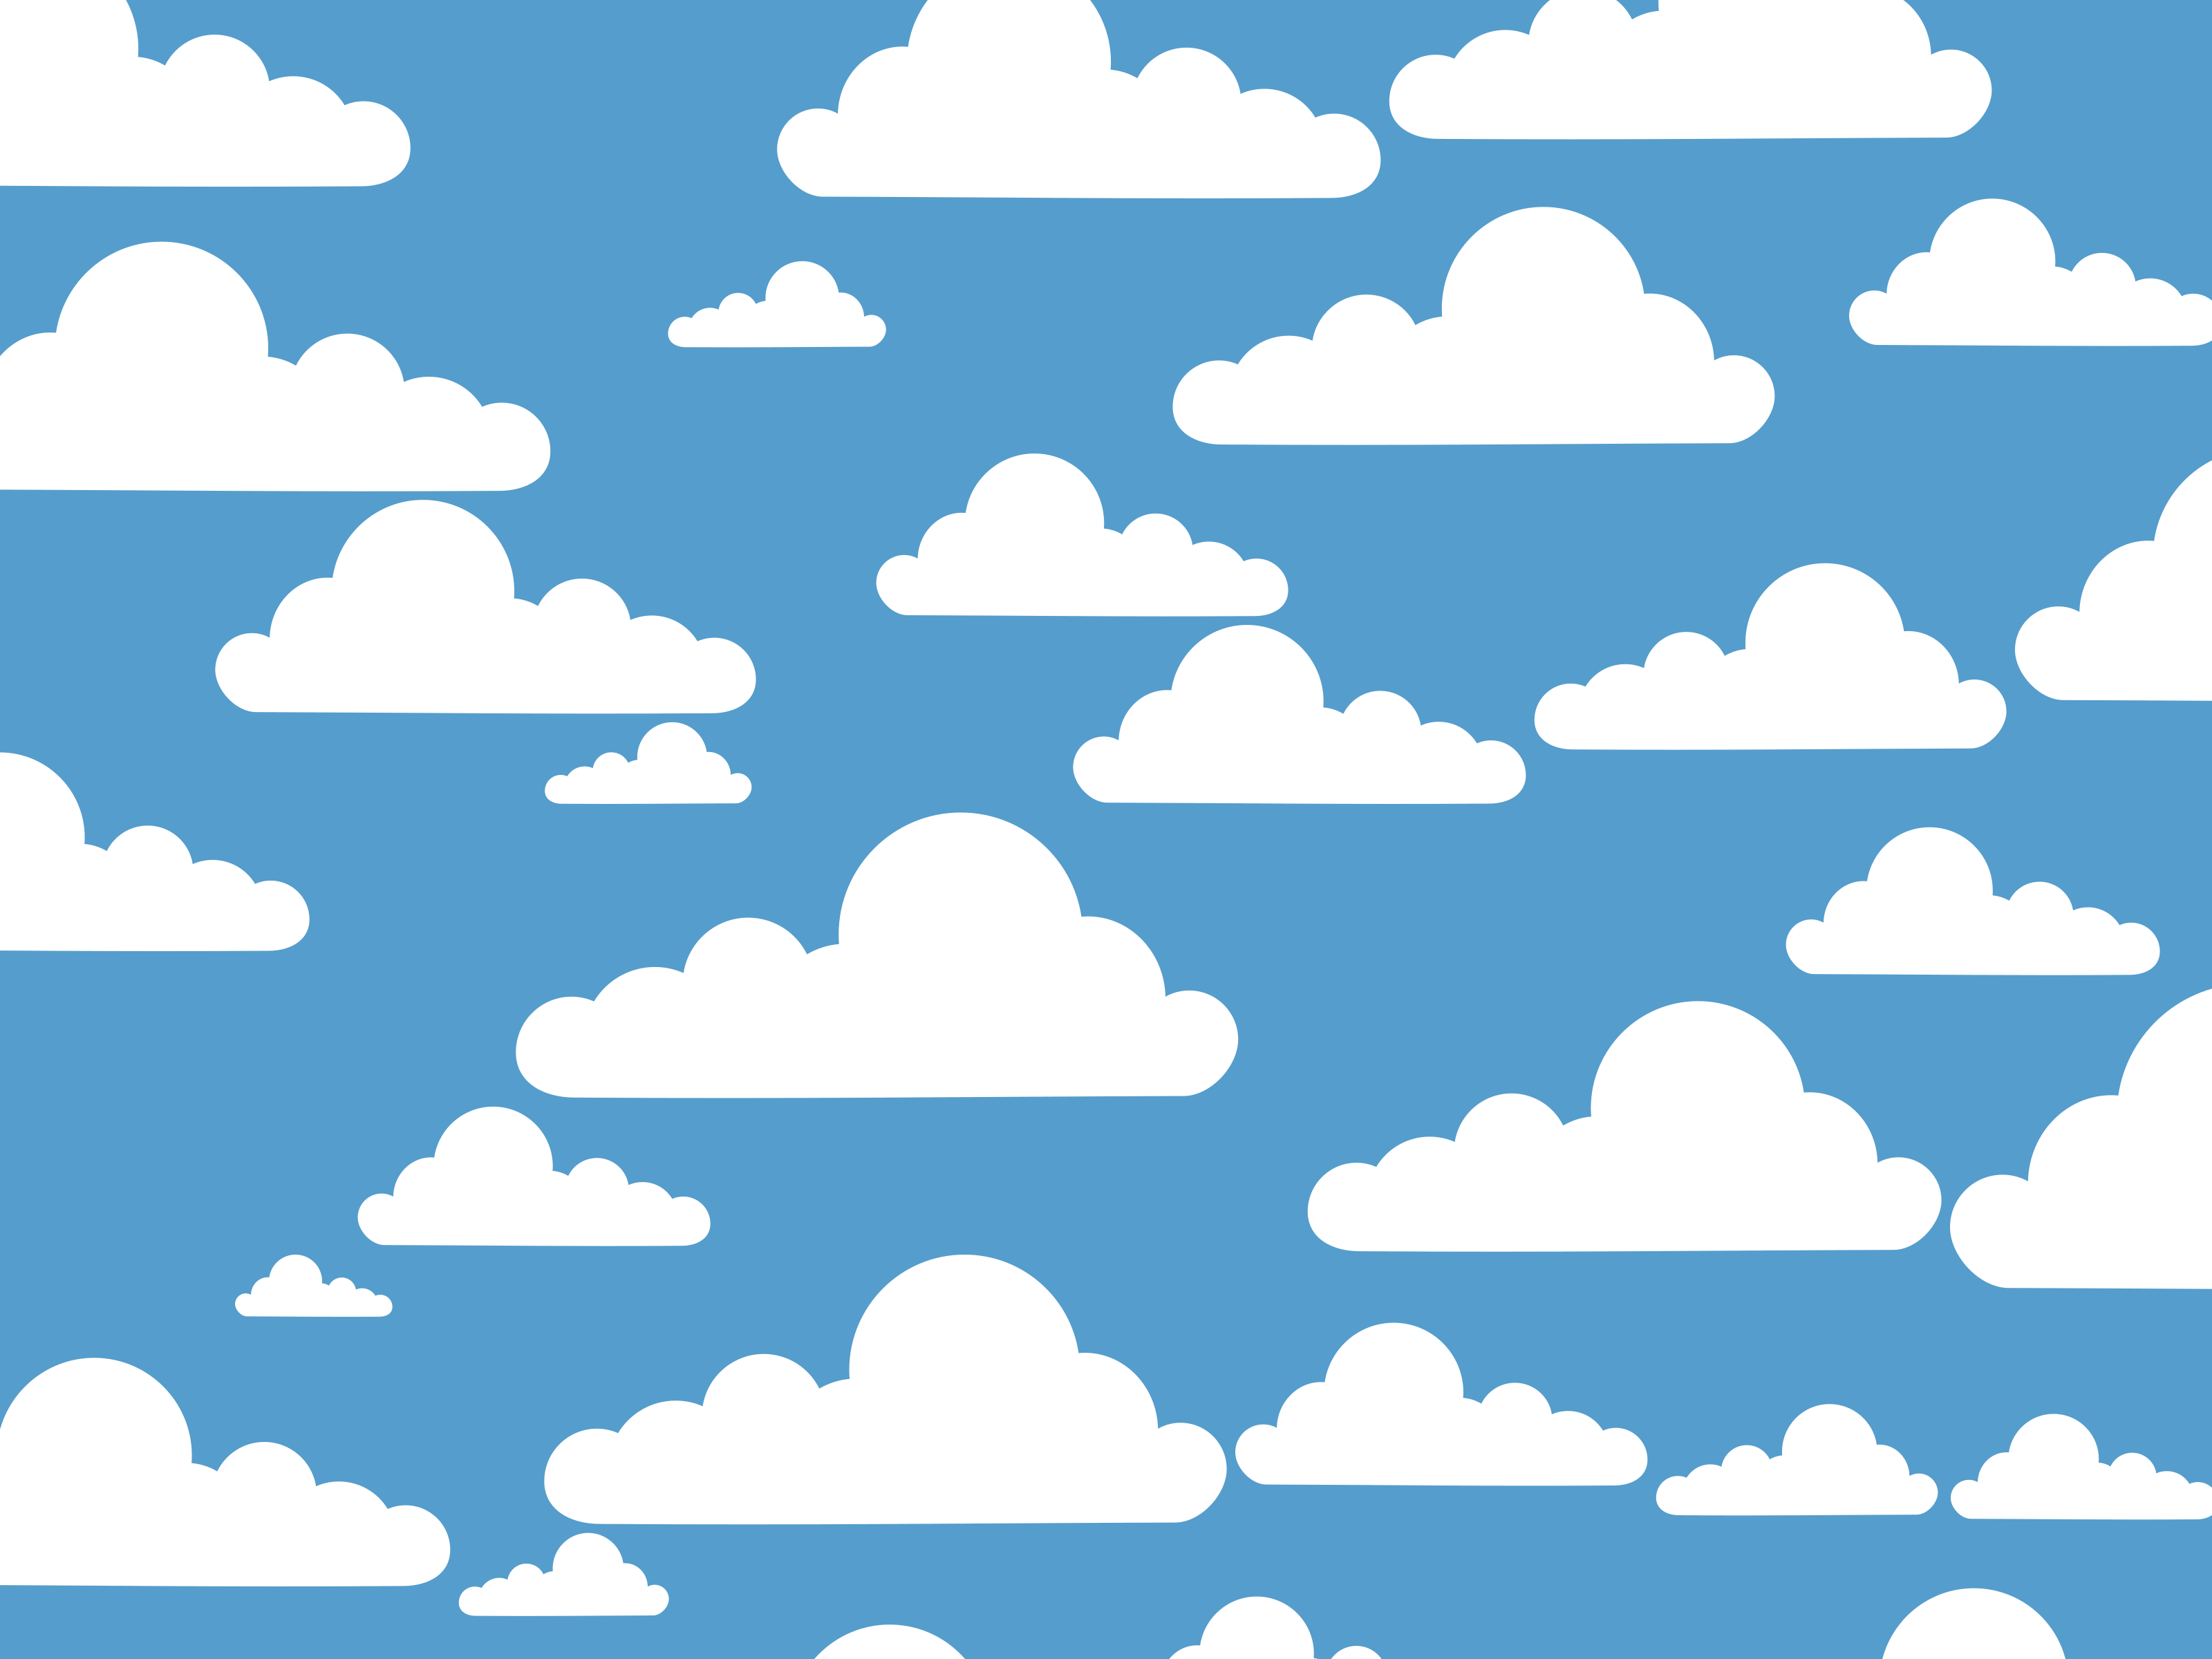 Simple Clouds by Clue